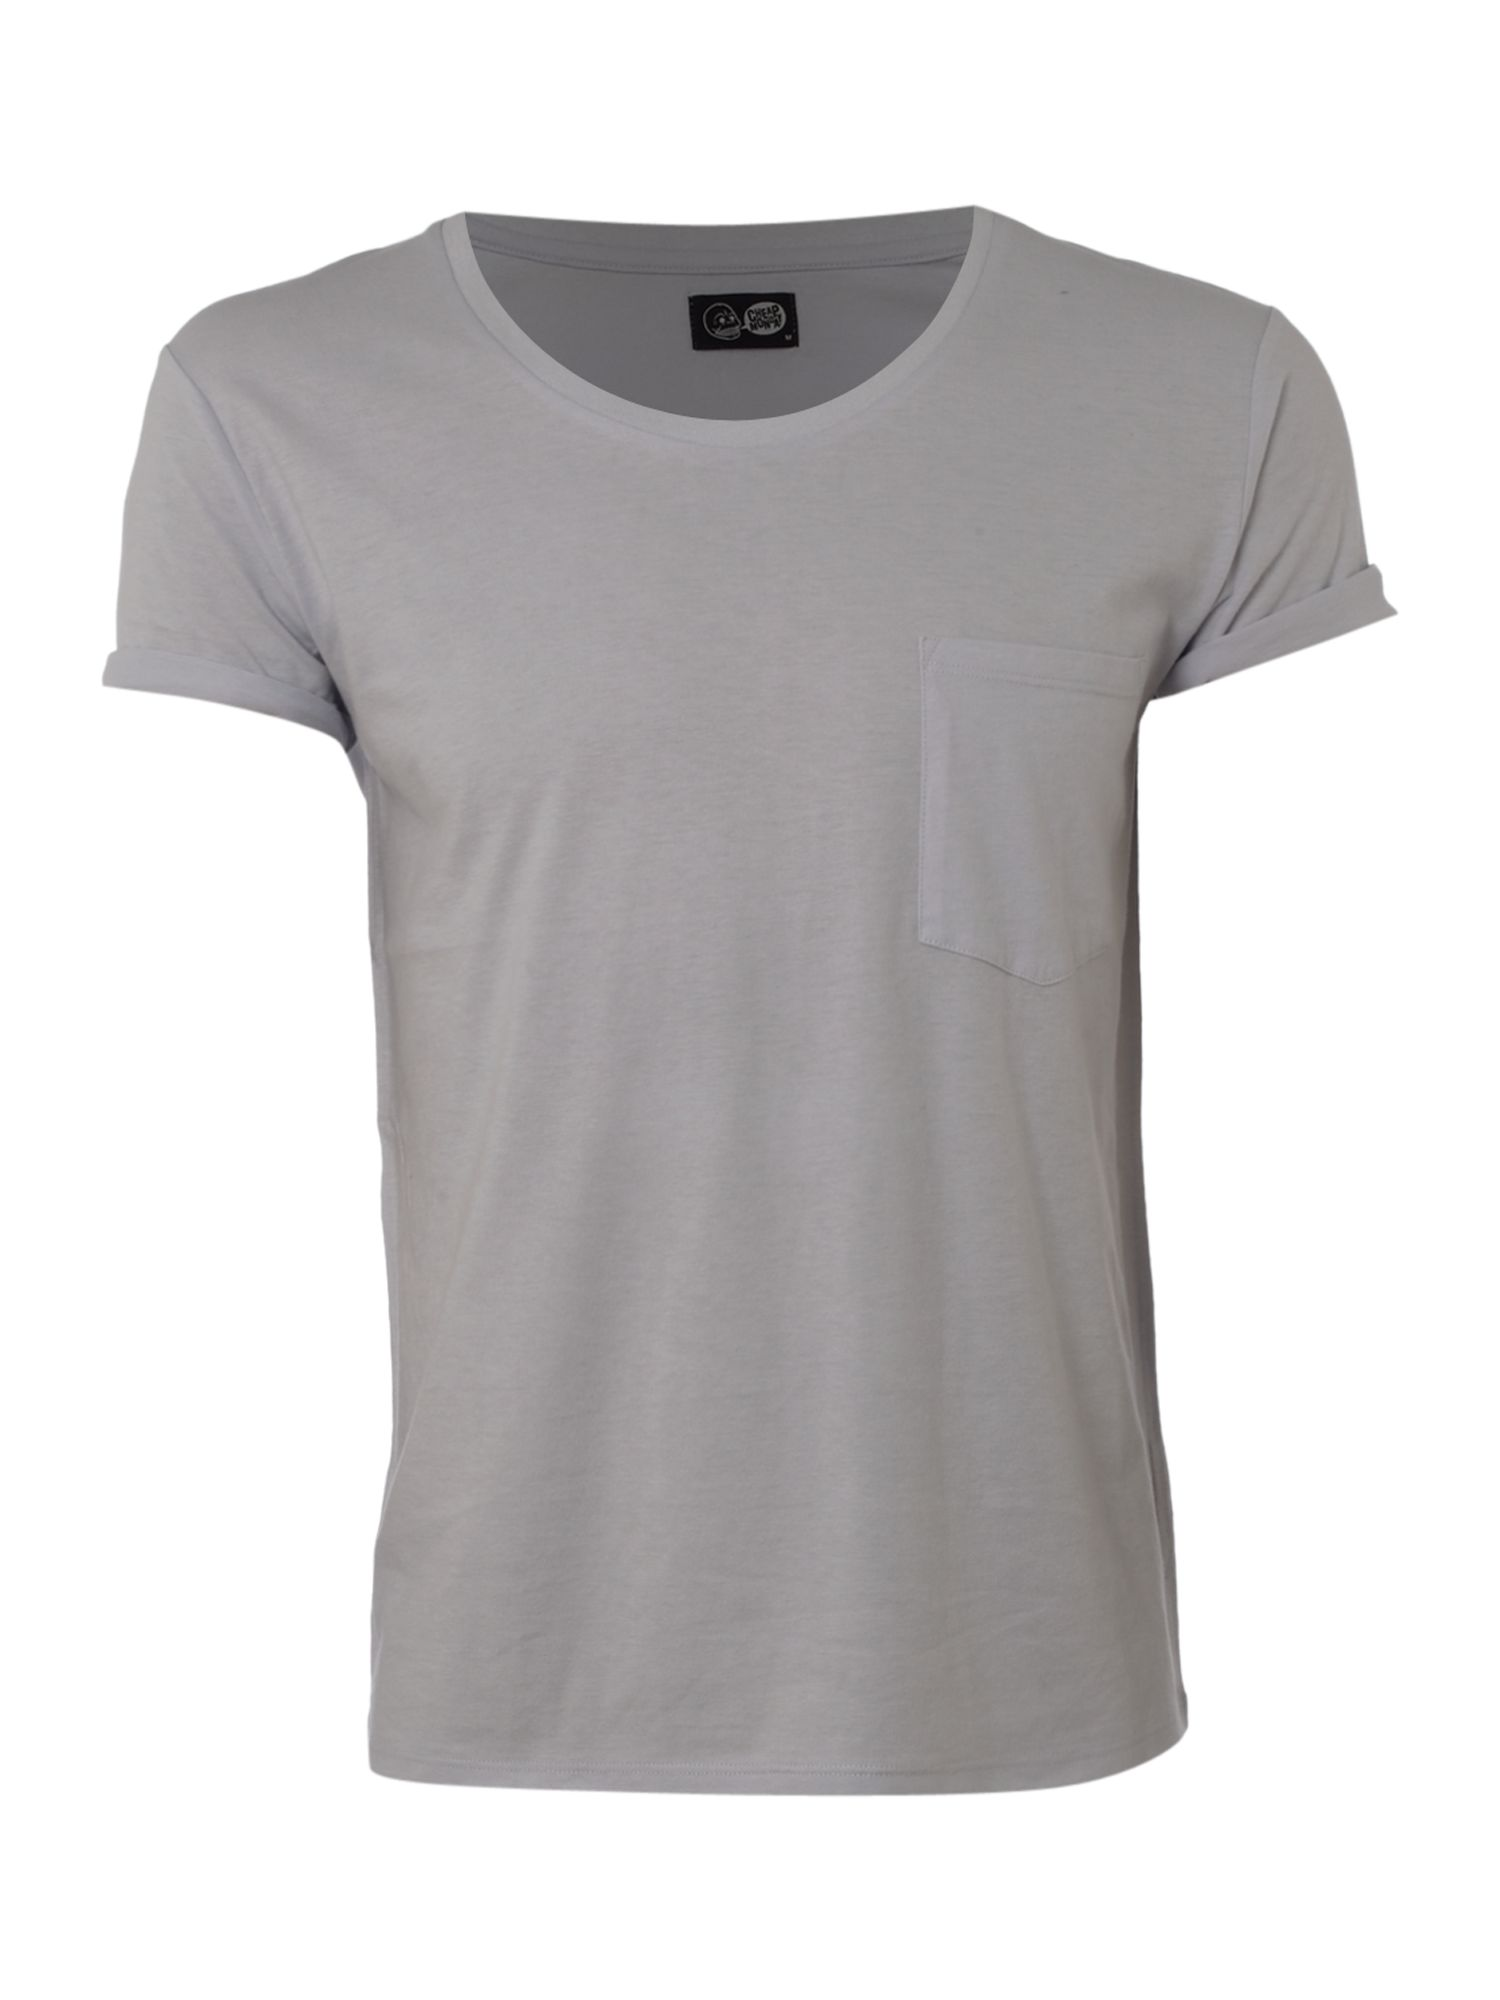 Cheap Monday Pocket t-shirt - Blue XS,XS,XS,S,S,S,L,L,L,M,M,M product image